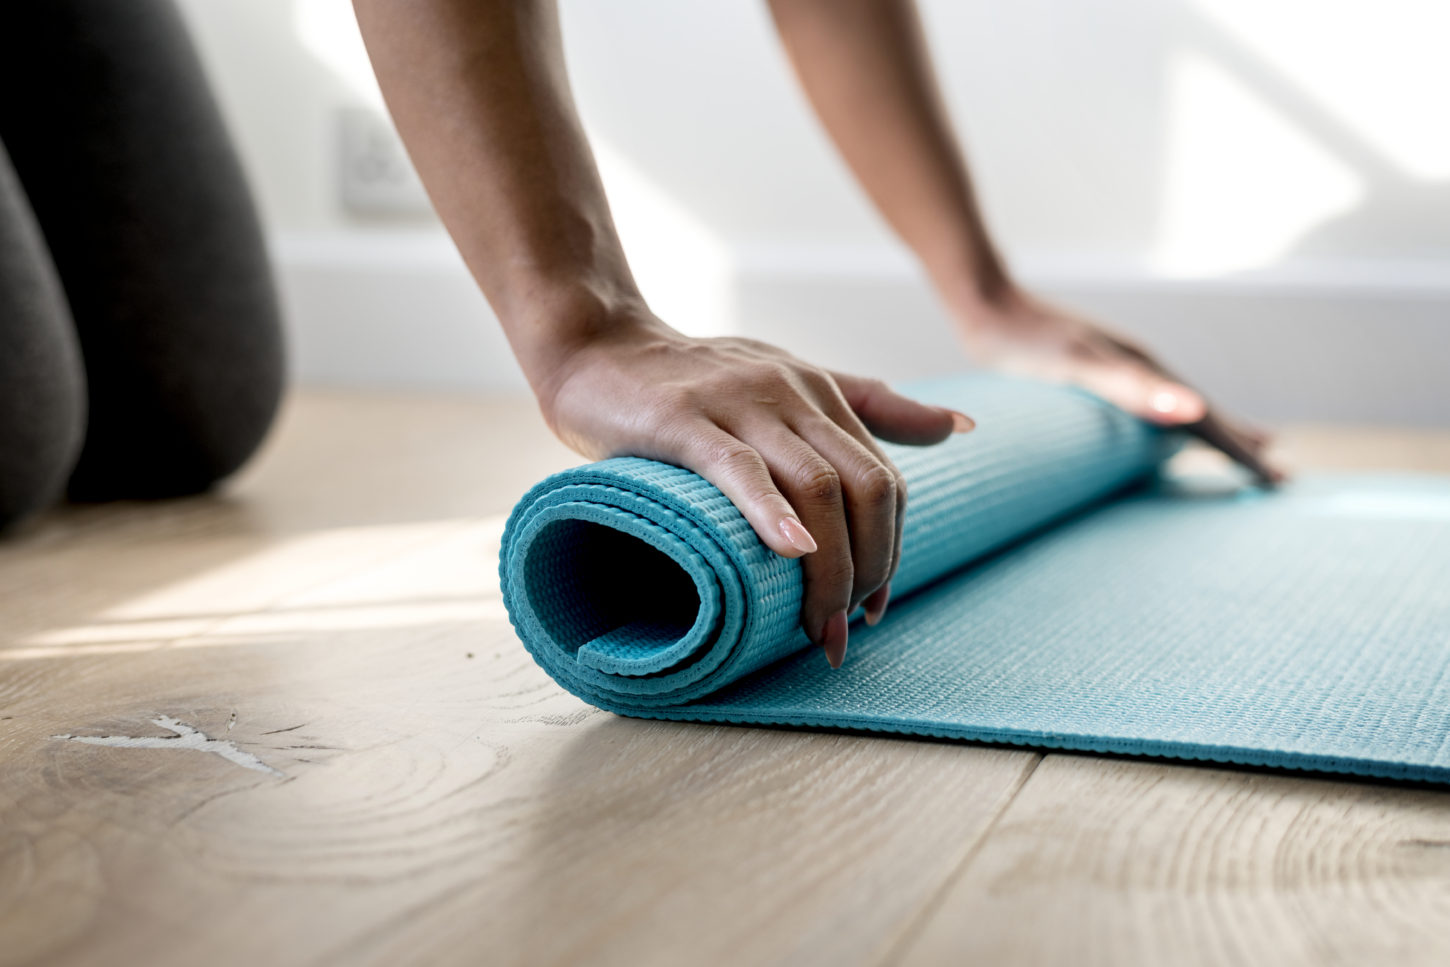 lifestyle redesign  - Yoga - Micro-Habits: Change Your Life with Small Improvements